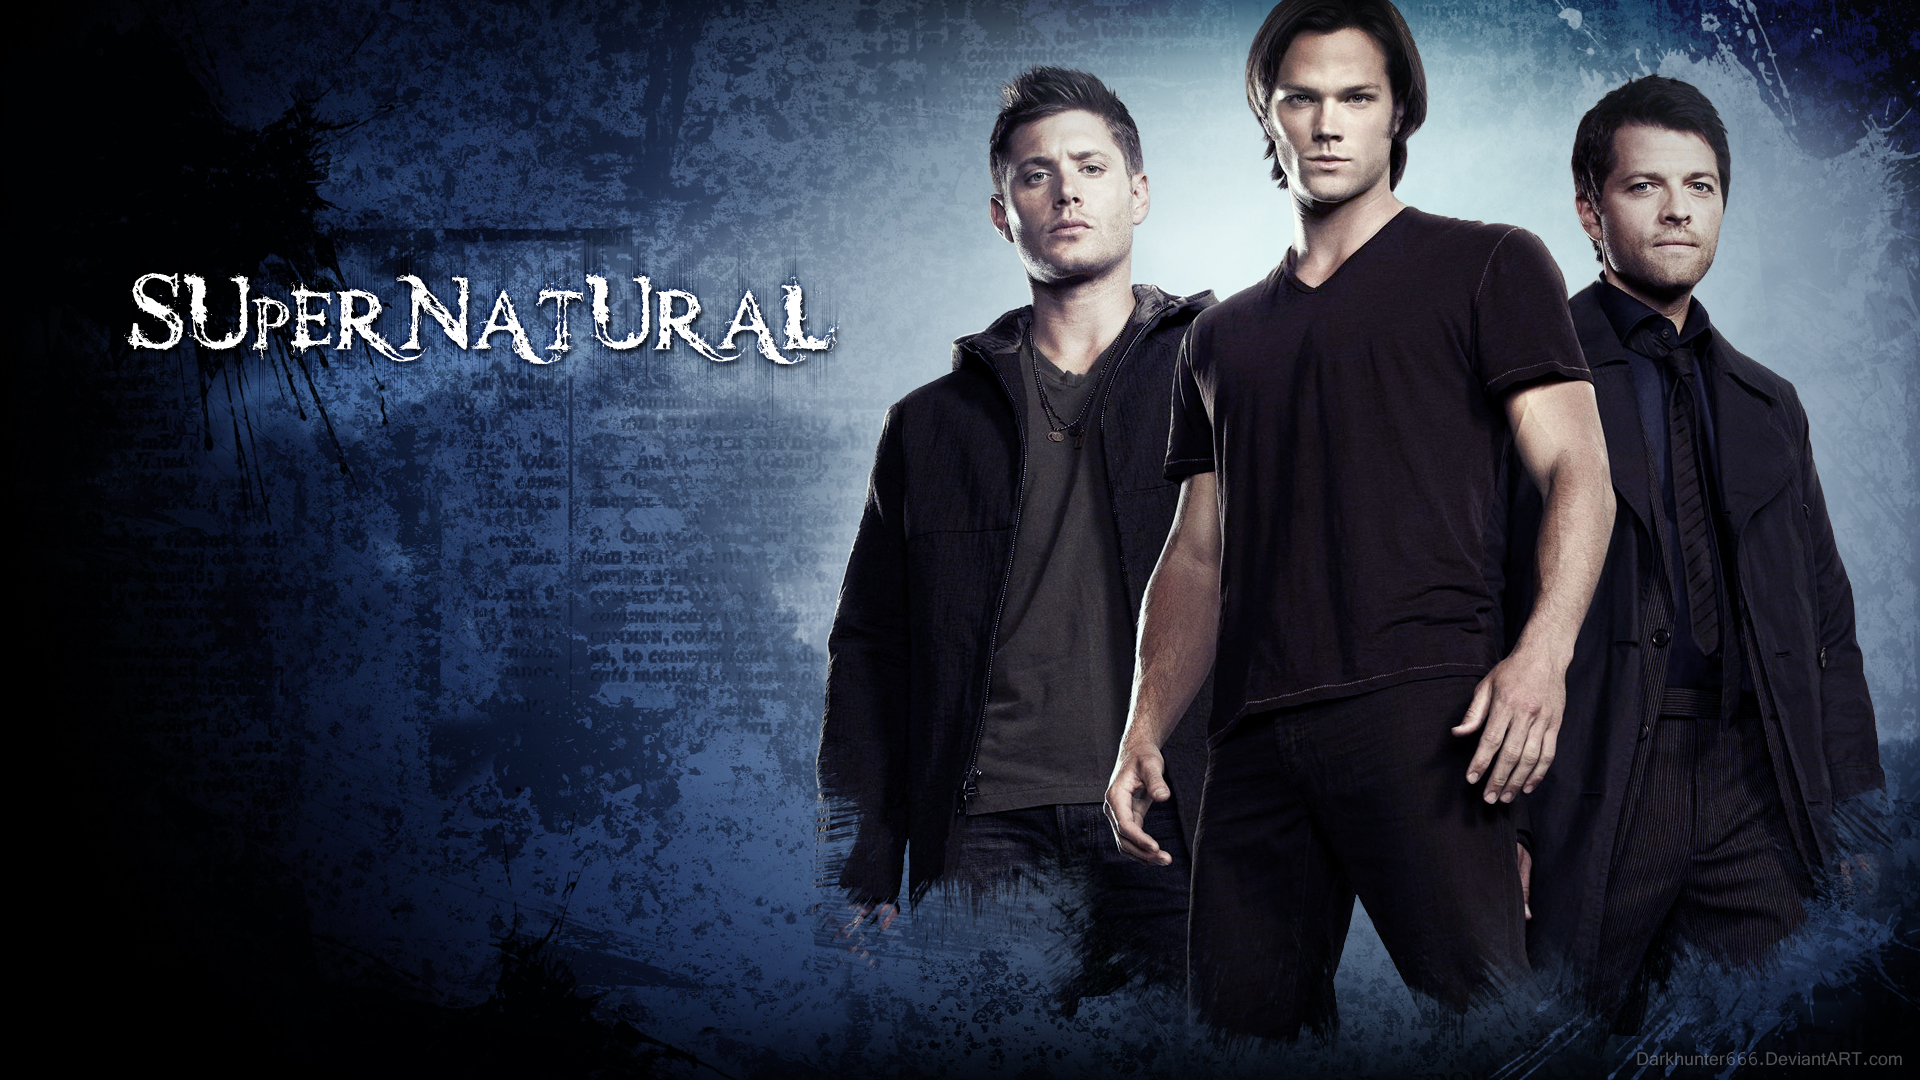 Supernatural Wallpaper Design by DarkHunter666